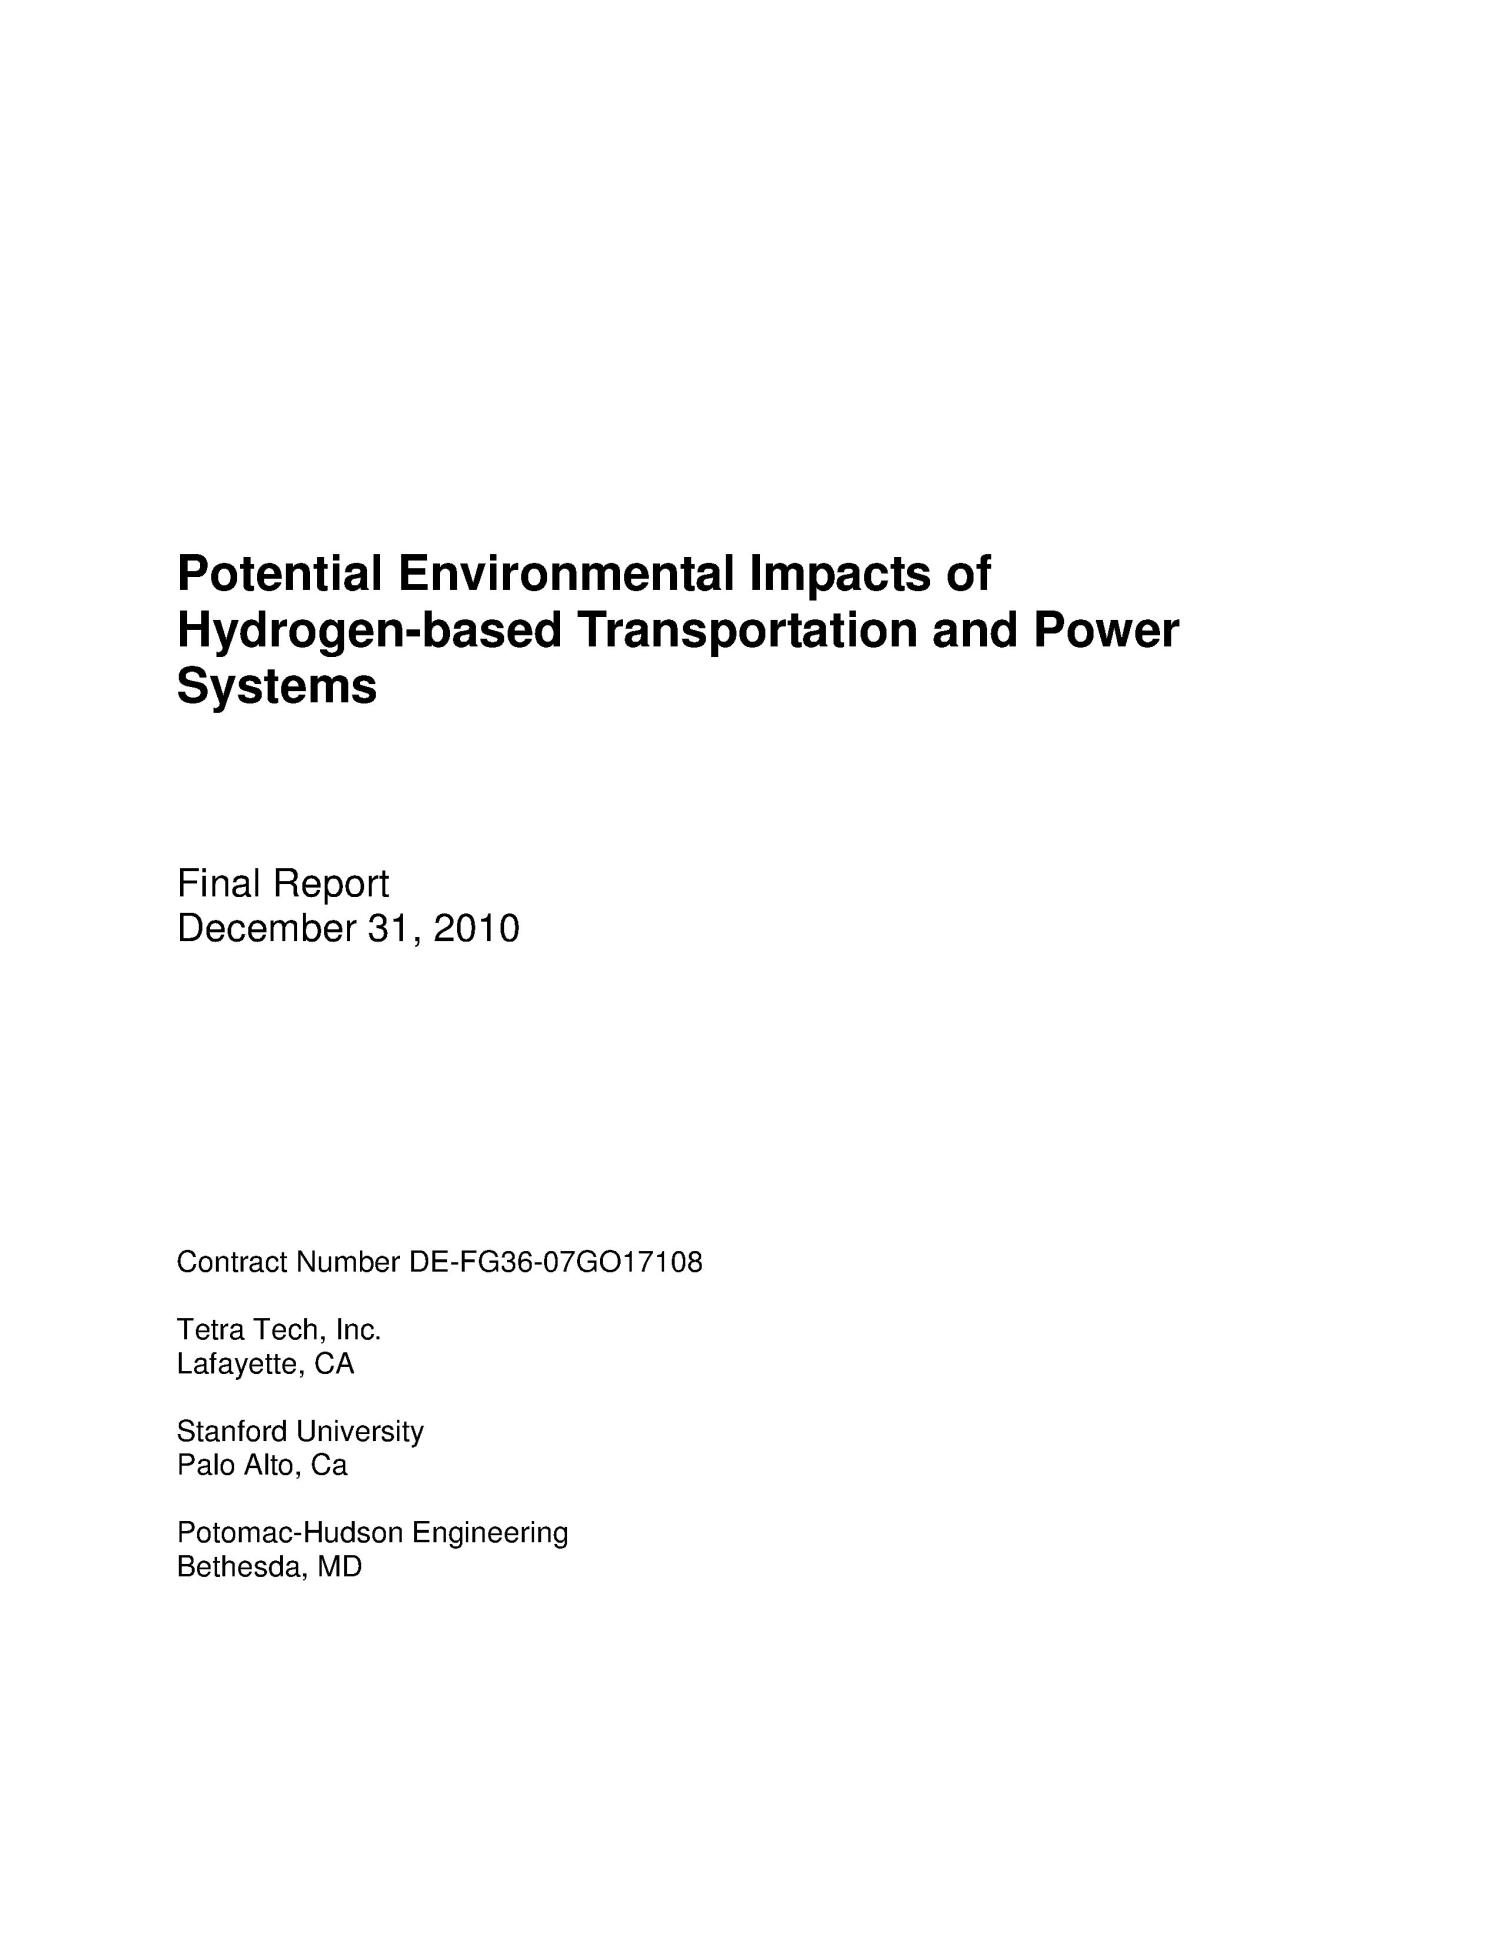 Potential Environmental Impacts of Hydrogen-based Transportation and Power Systems                                                                                                      [Sequence #]: 1 of 244